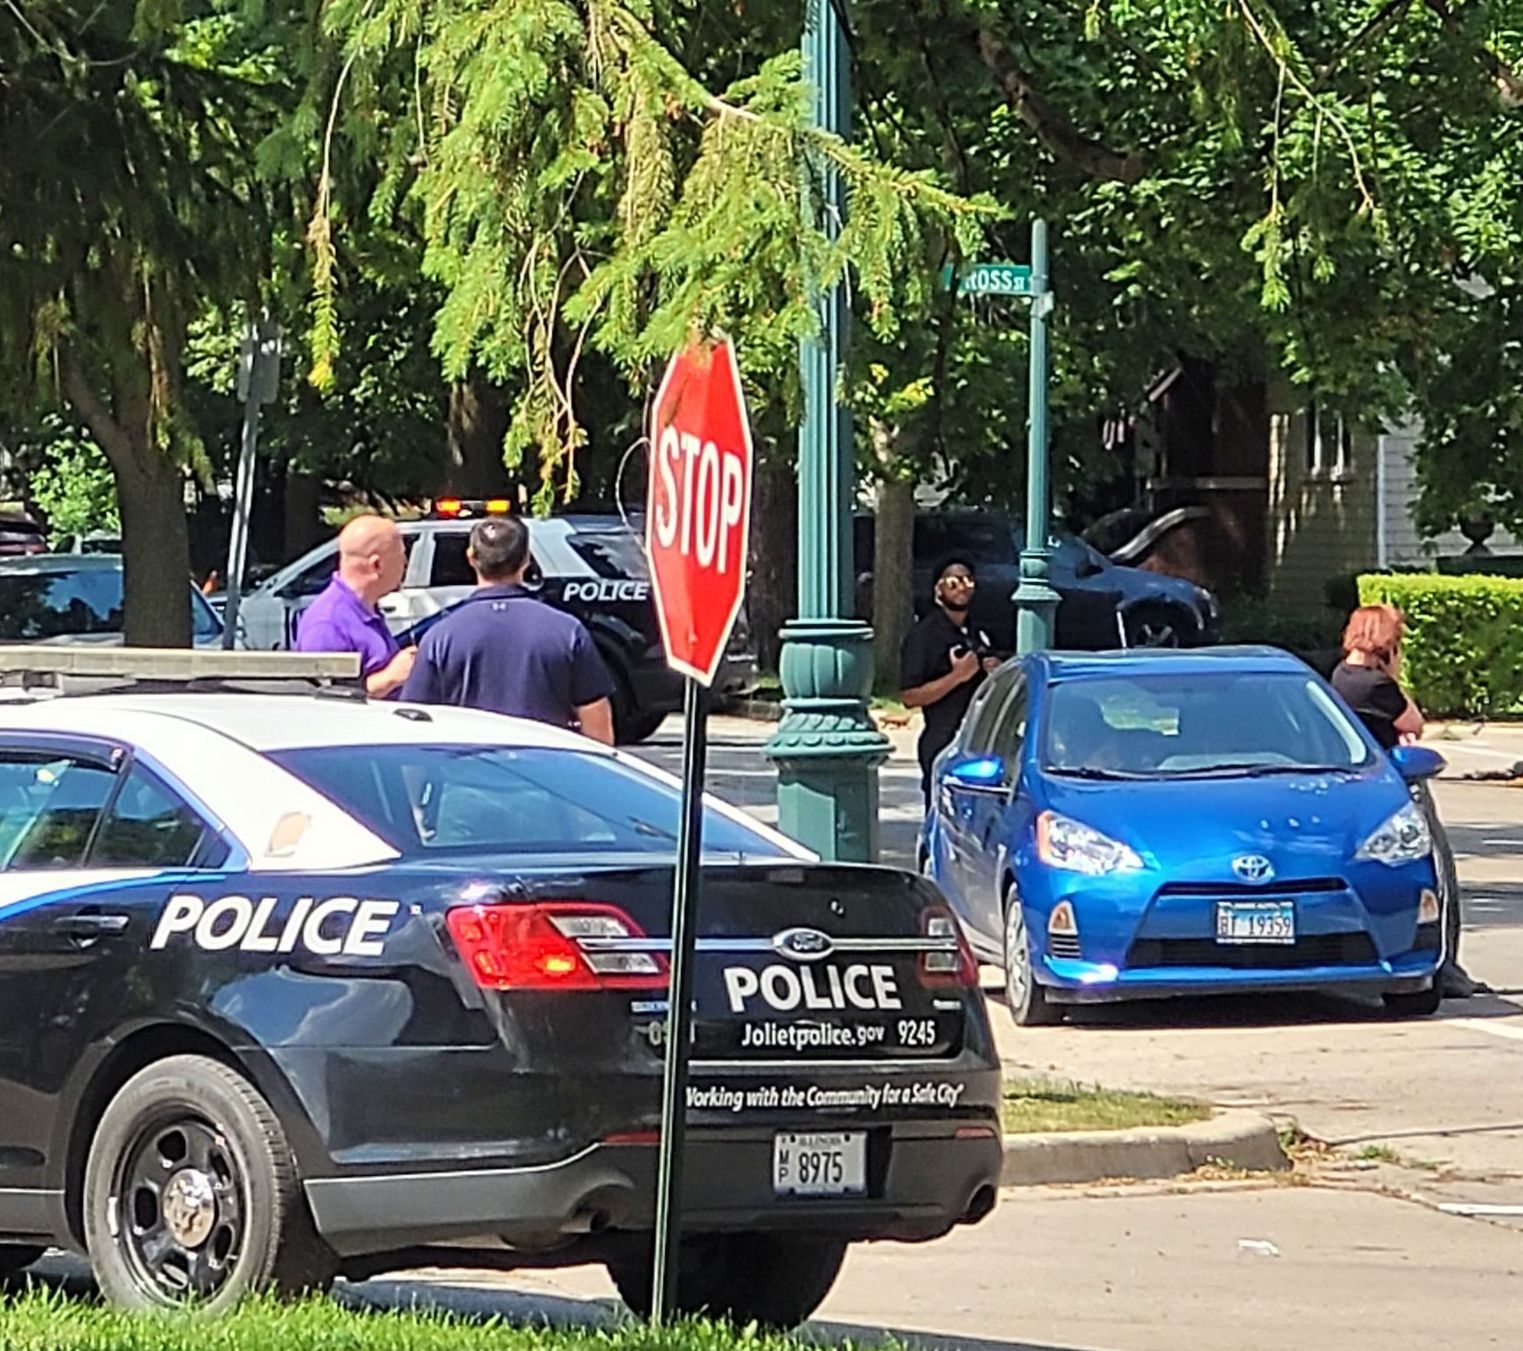 A woman was wounded in a Tuesday afternoon shooting near Joliet's Six Corners.